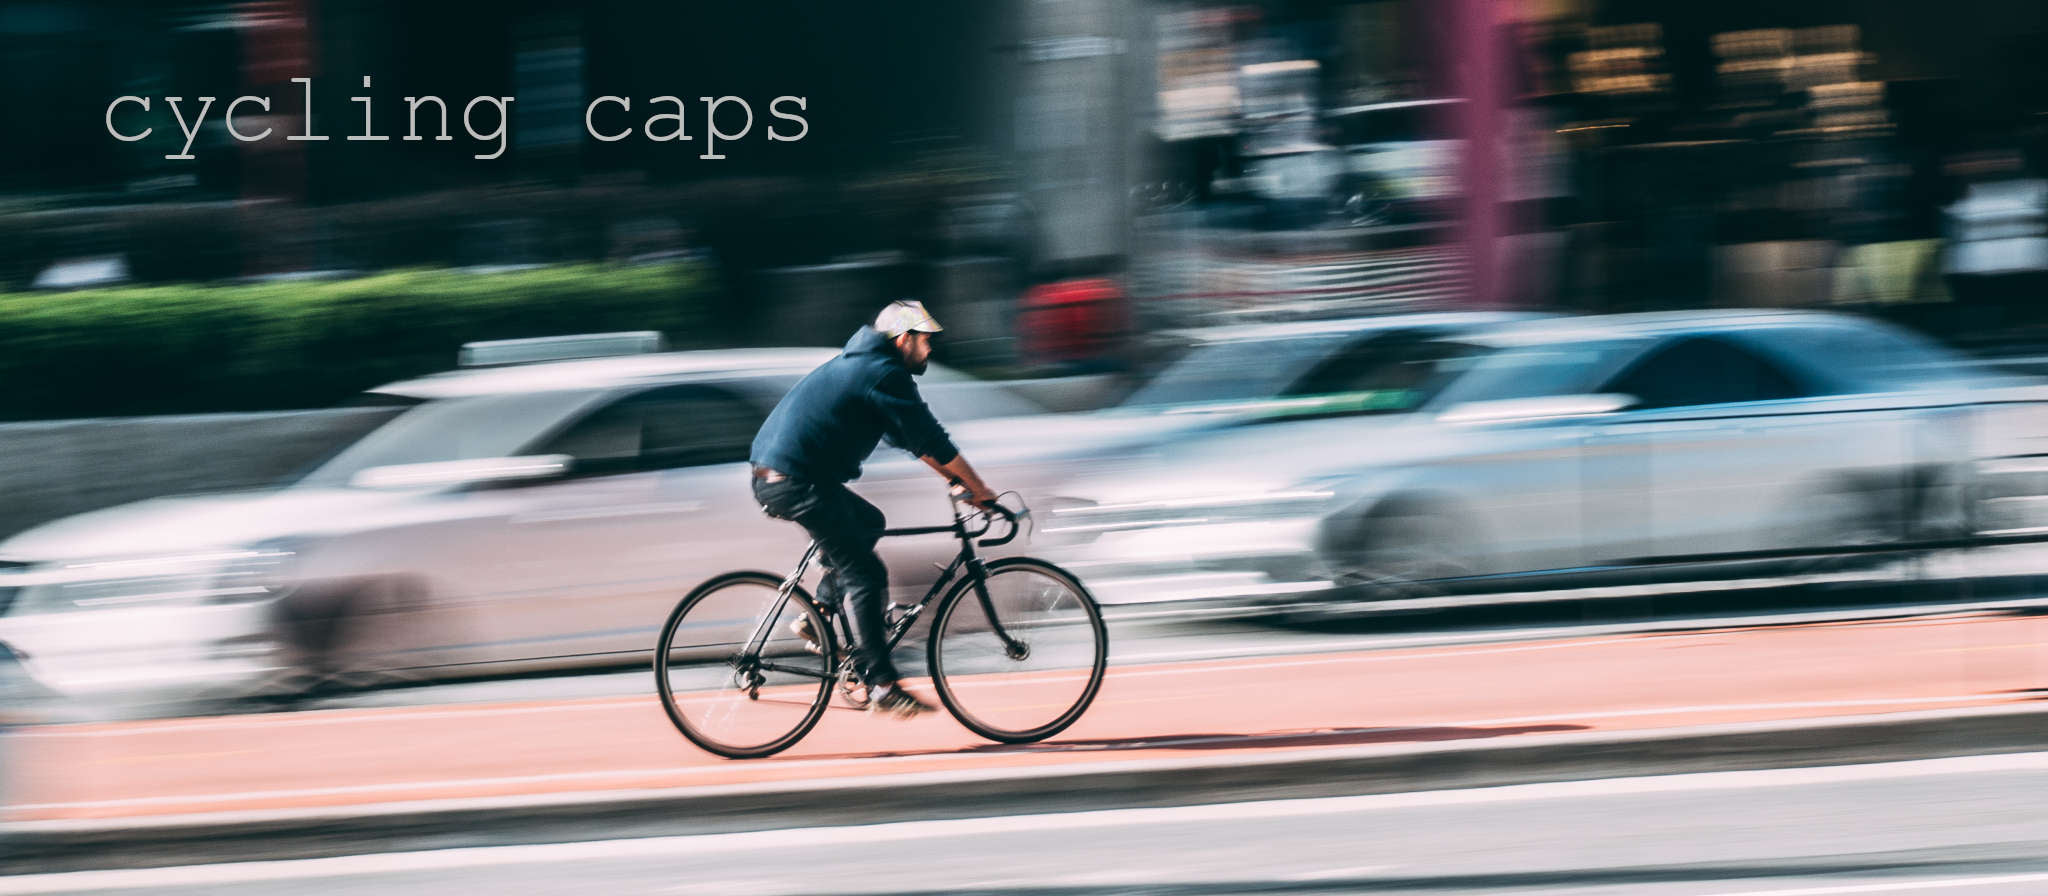 Upside Cyclestyle Cycling Cap collection - man with reflective cap in bike lane